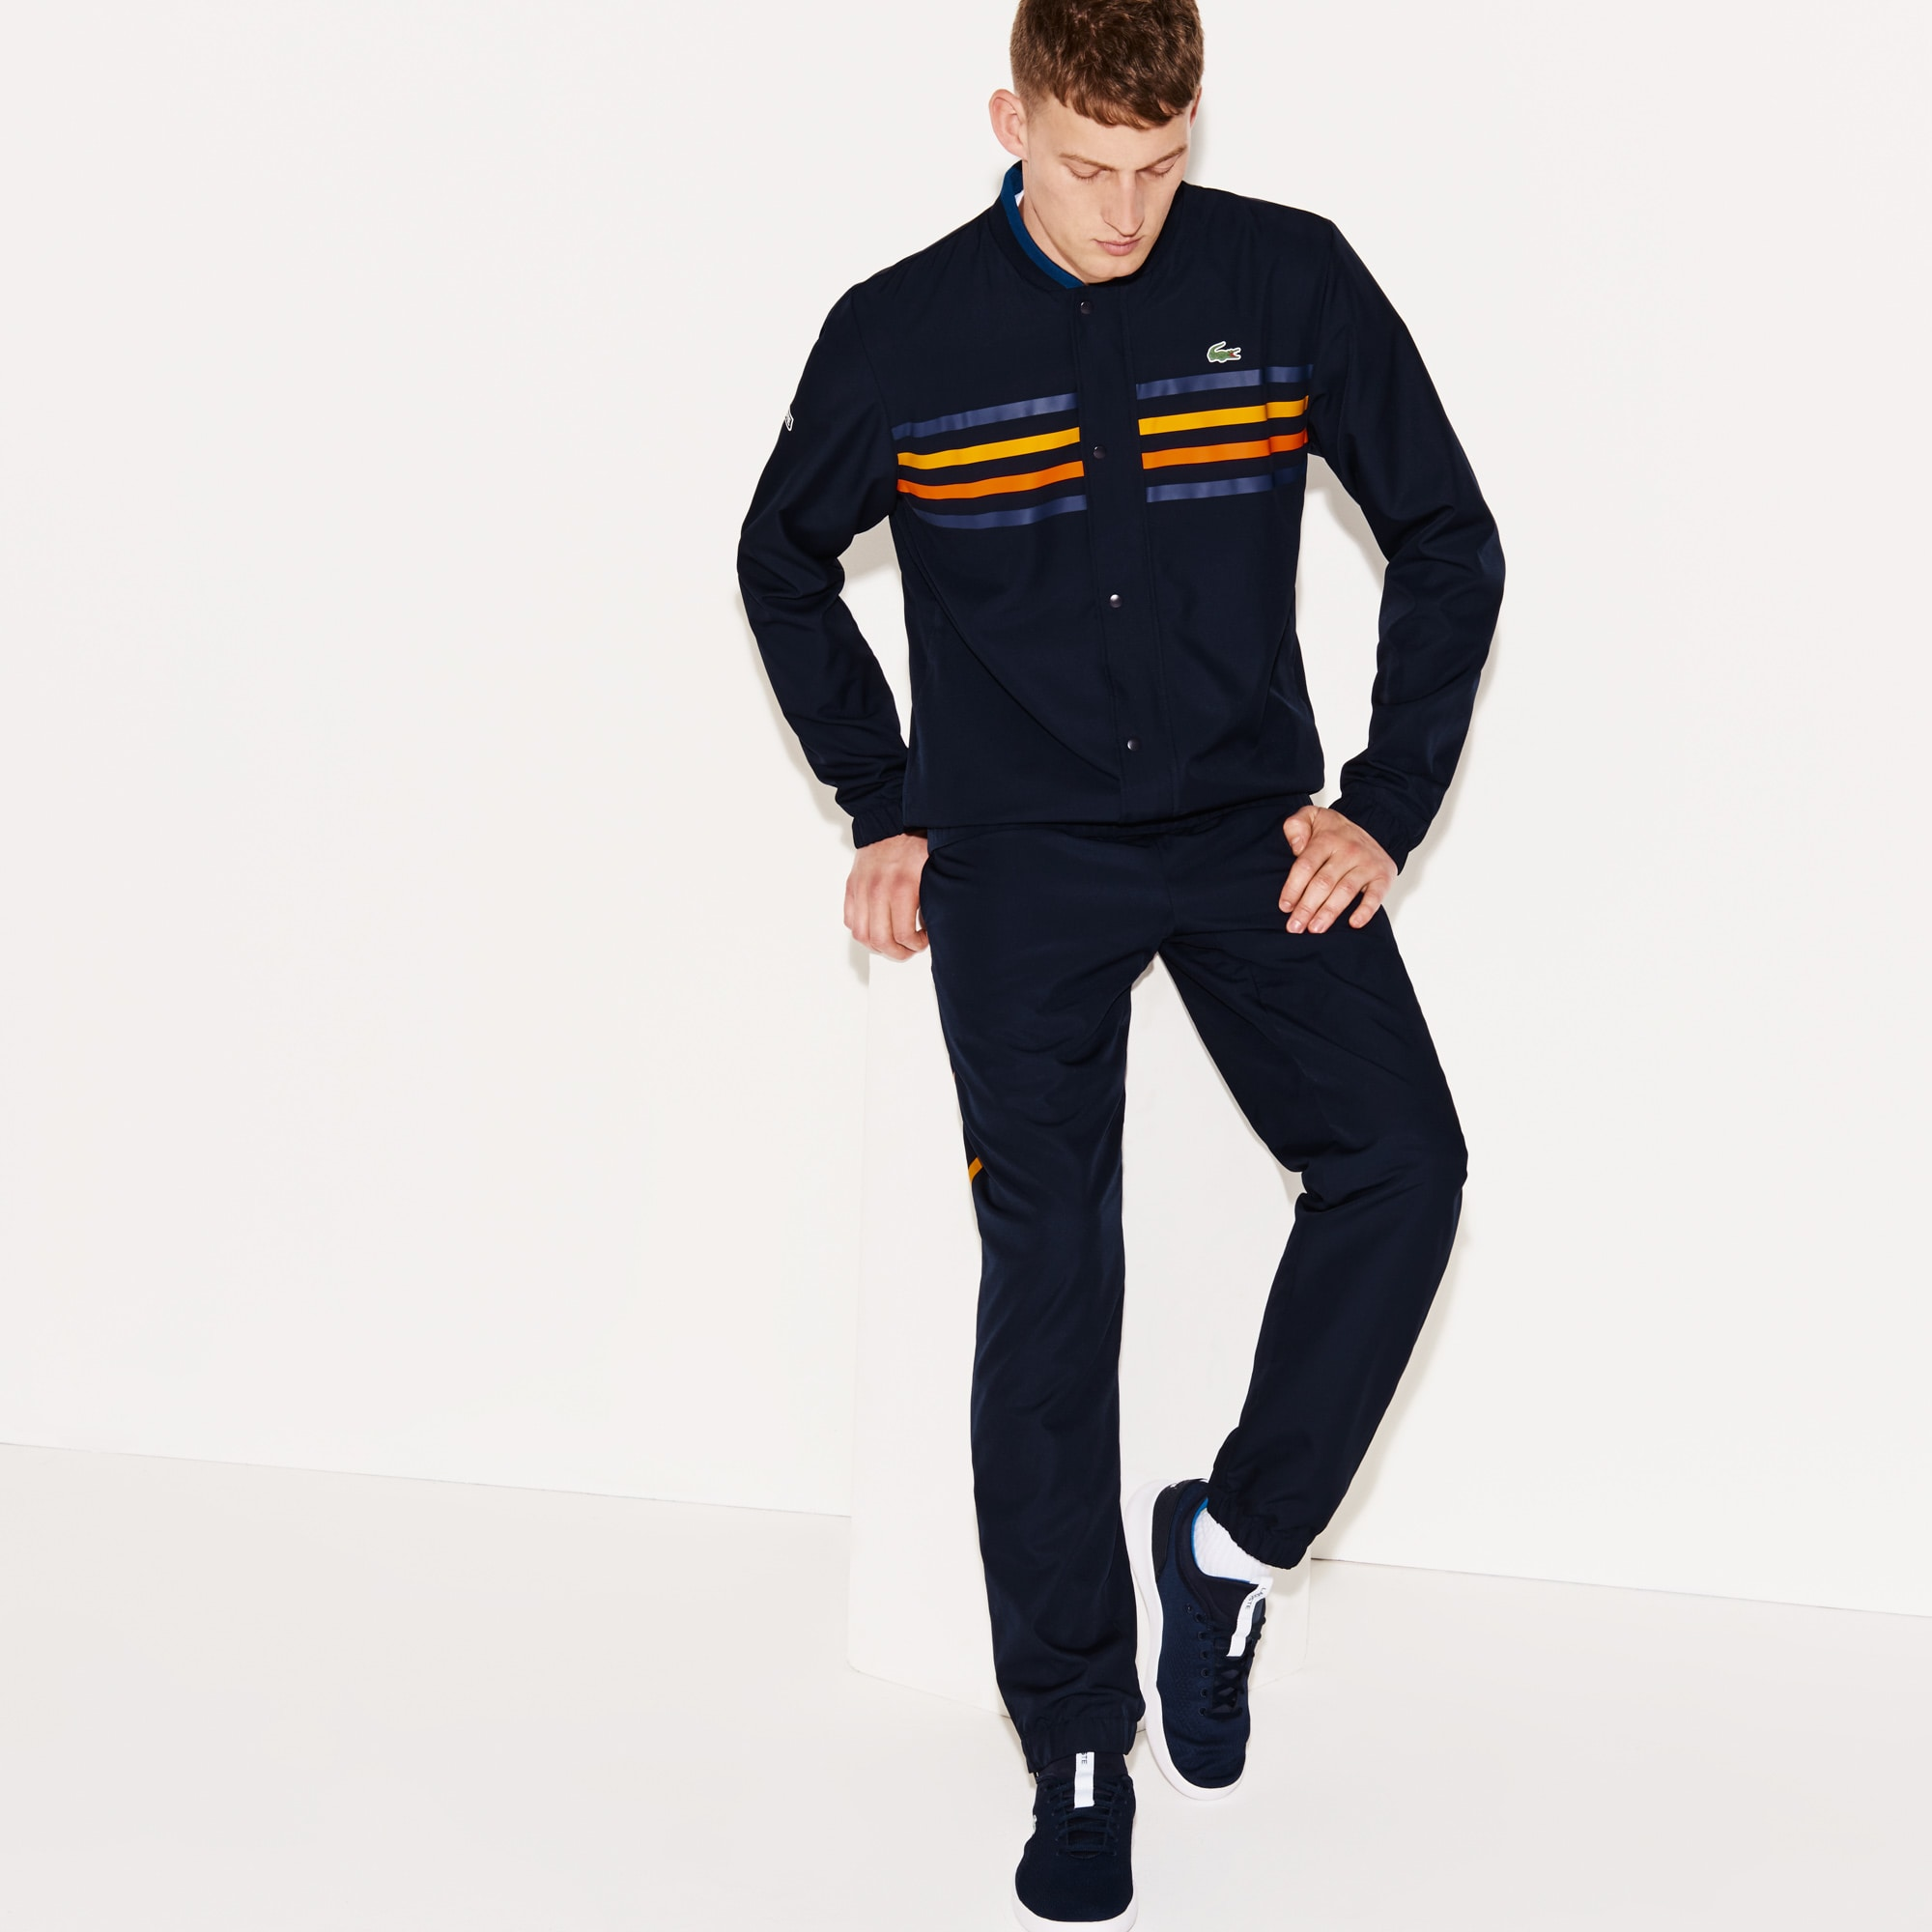 Men's Lacoste SPORT Colored Bands Tennis Tracksuit